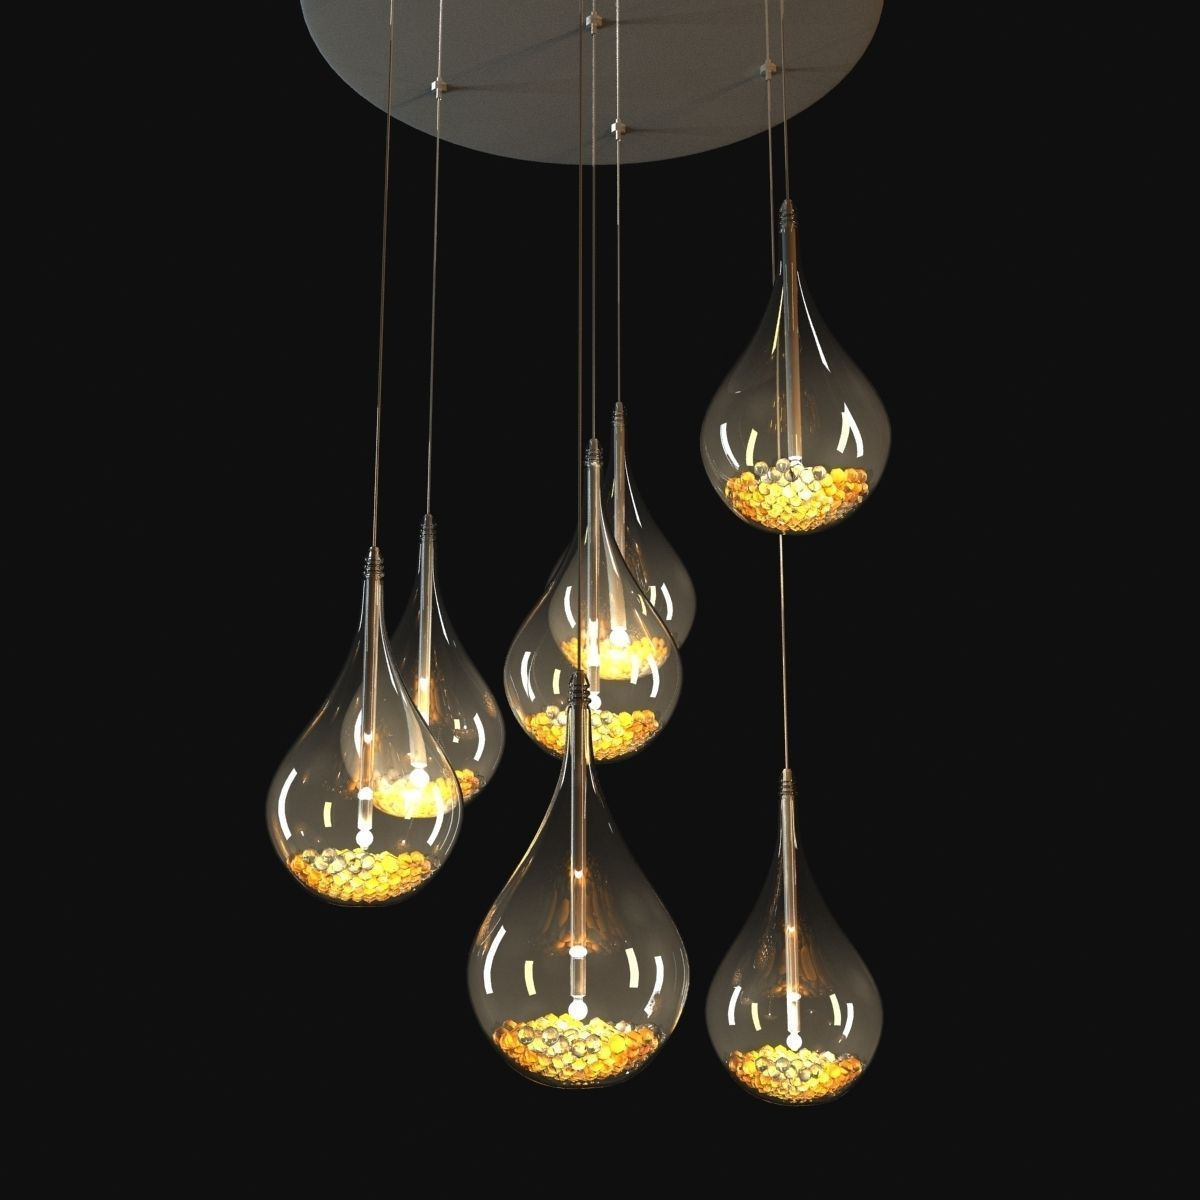 lights design system drop led linear for furniture creative of recessed light fresh luxury lighting ideas ceiling